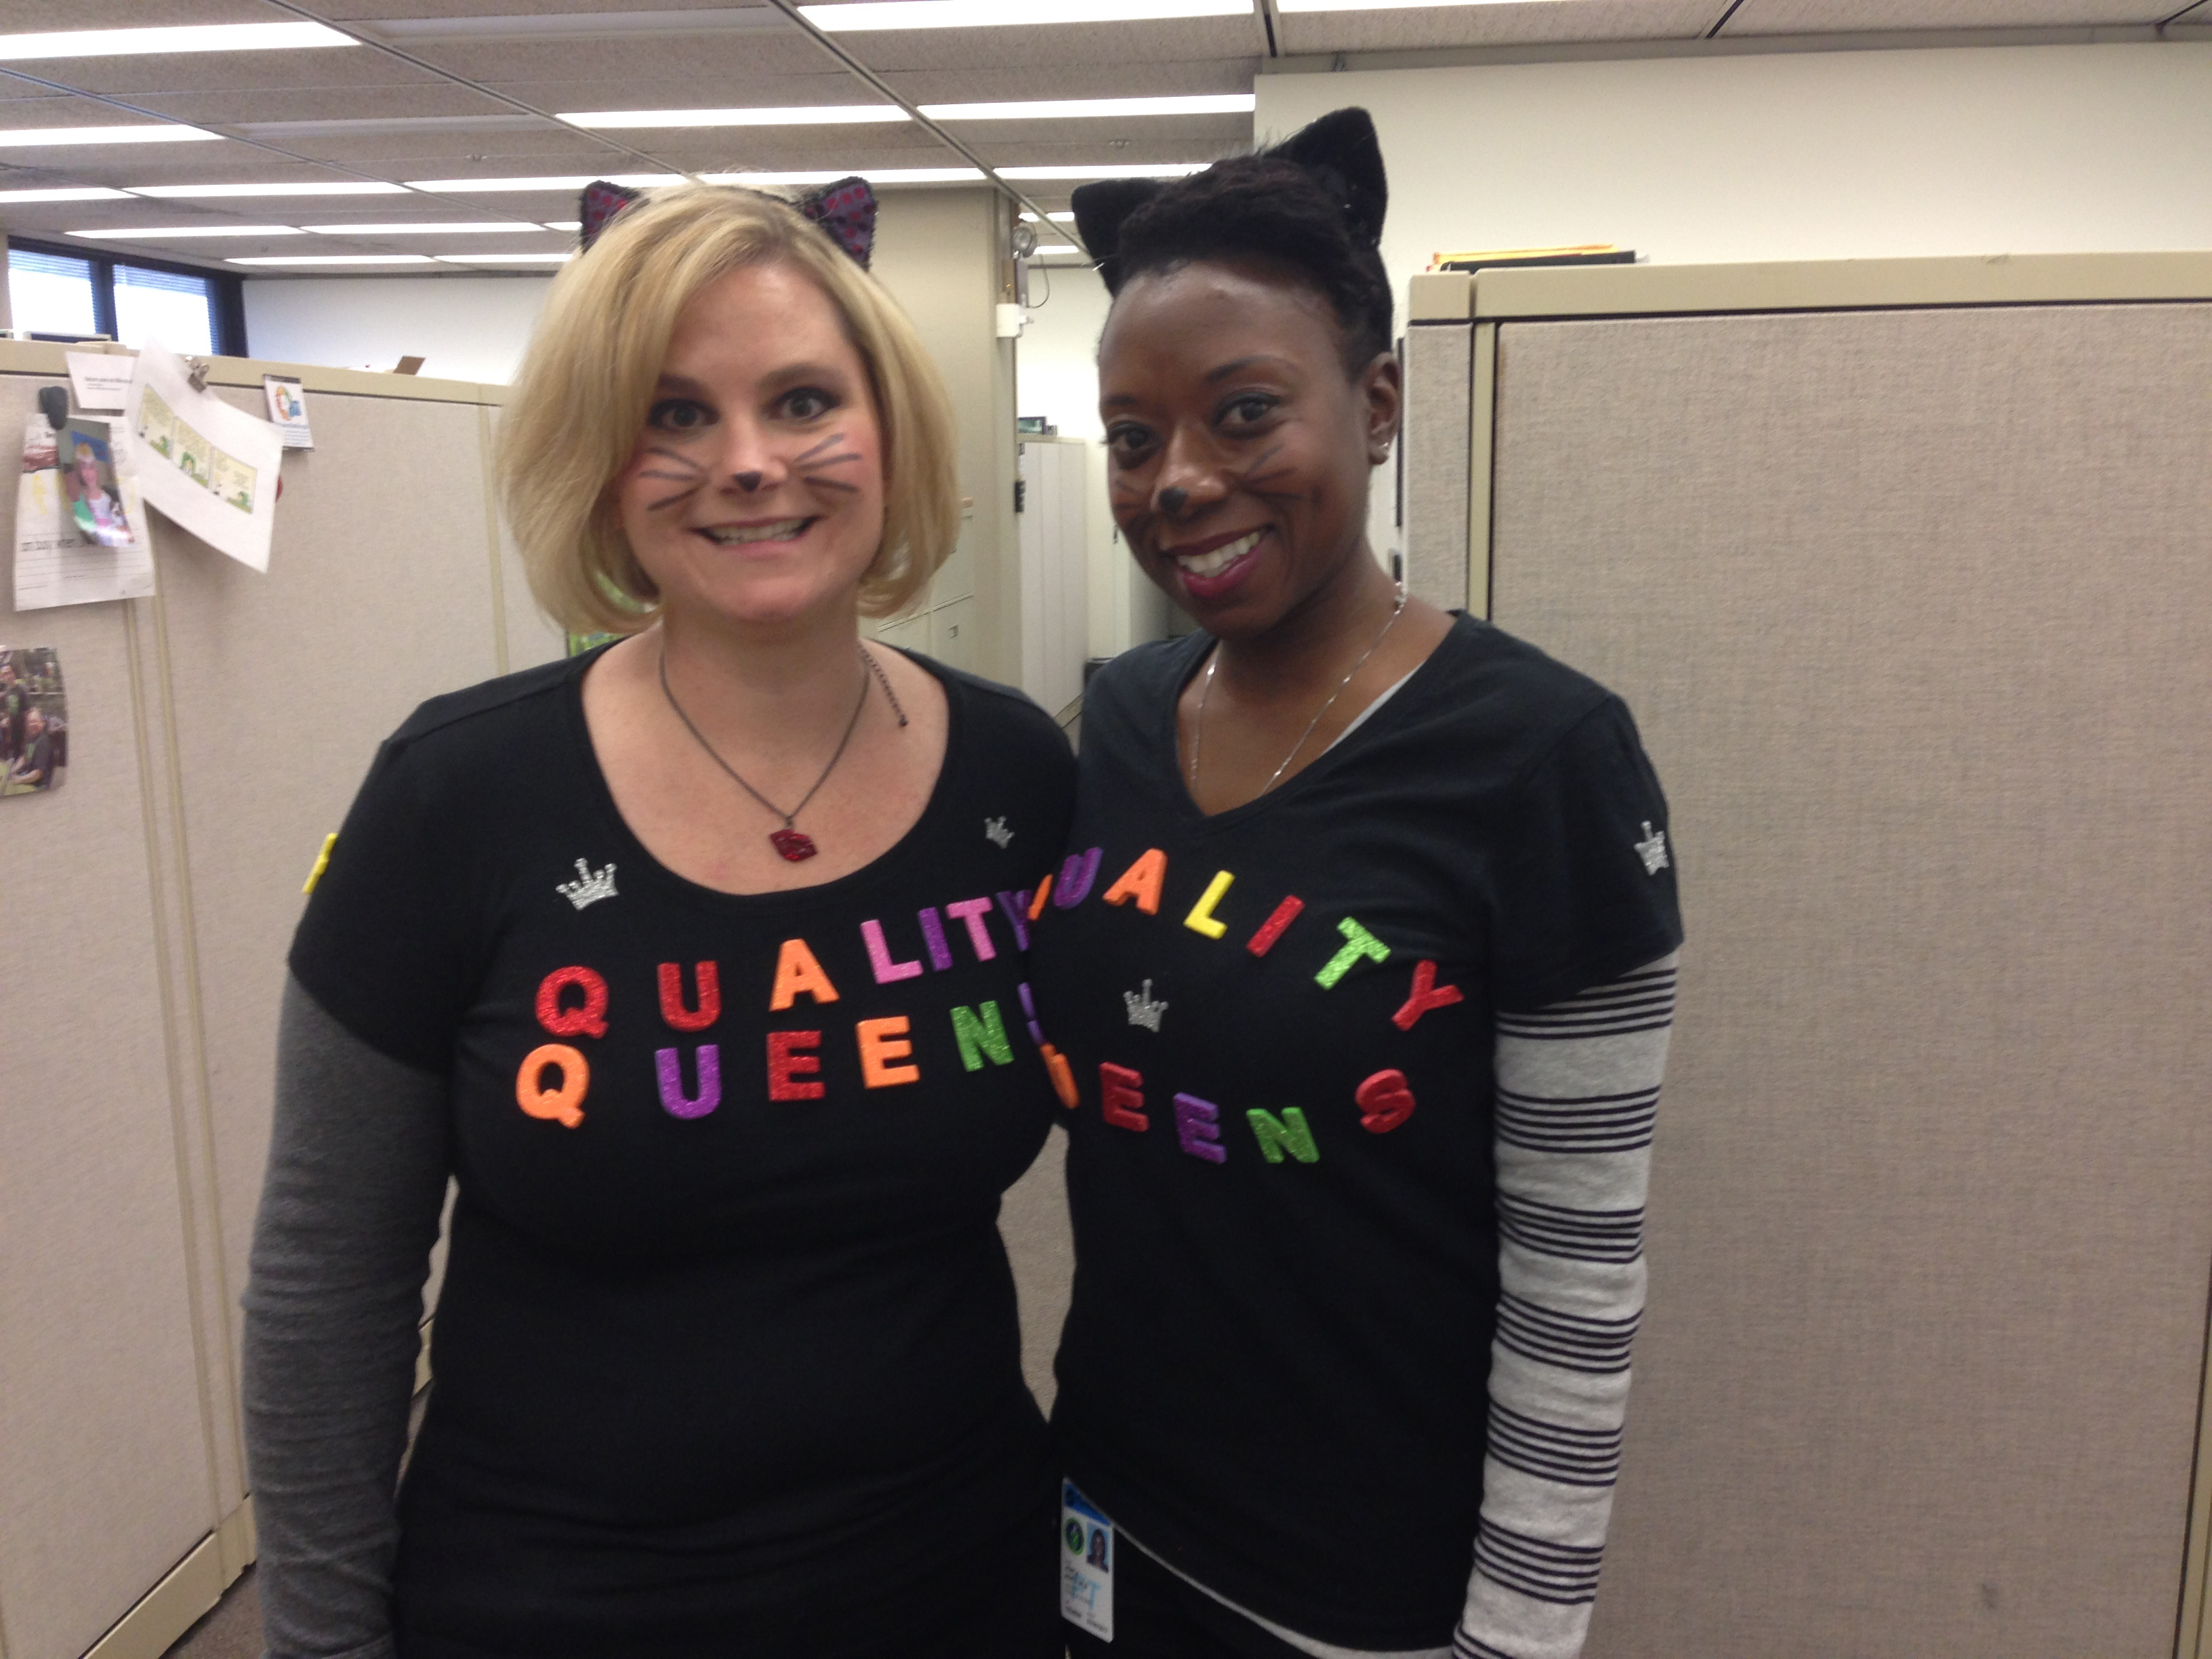 ESH&Q's Kathy Zappia, left, and Jemila Adetunji are the queens of quality at Fermilab. Photo courtesy of Martha Michels, ESH&Q